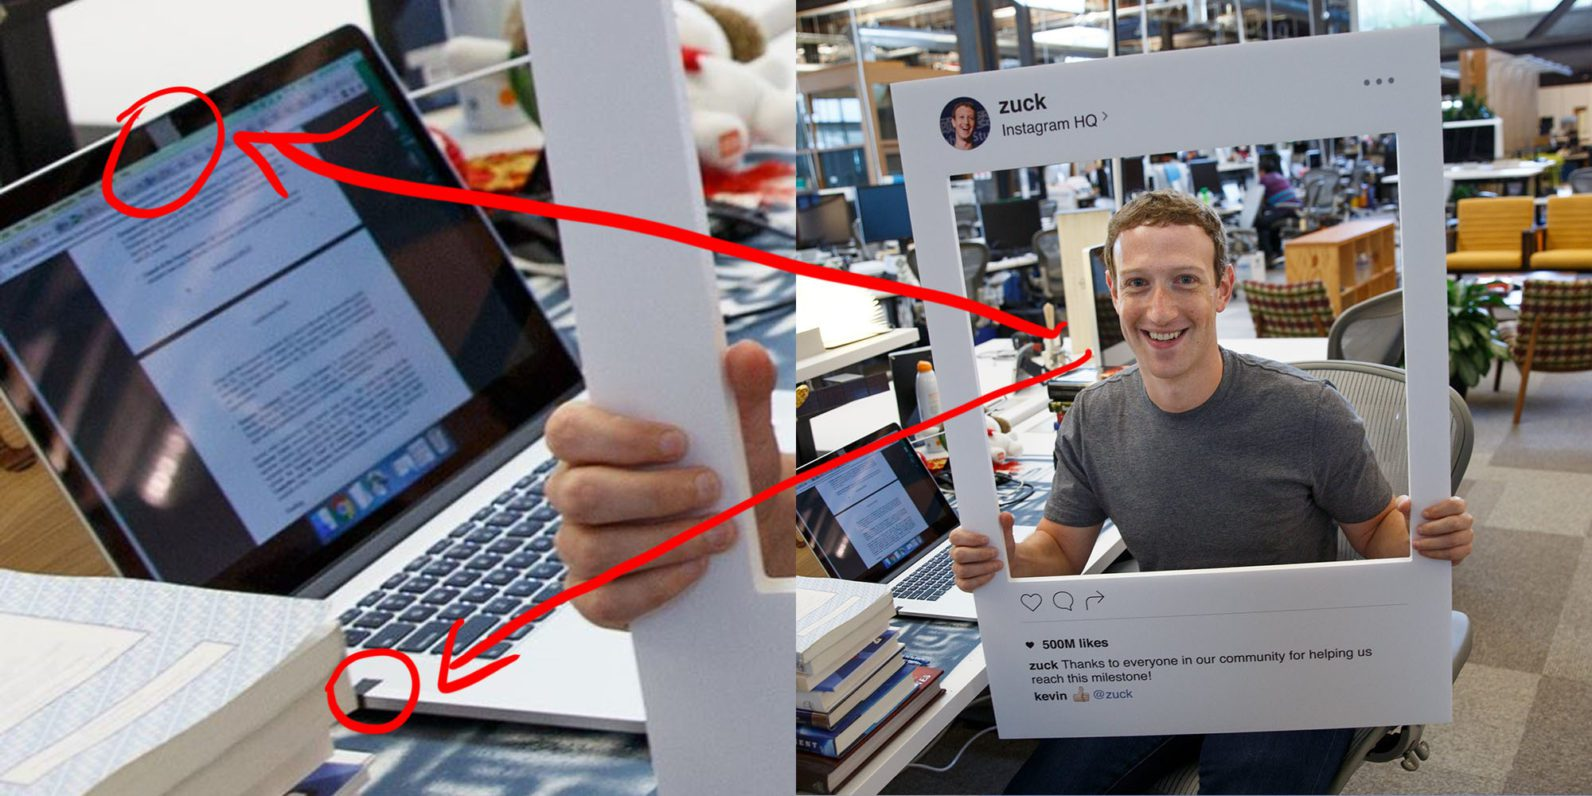 mark zuckerberg kamera